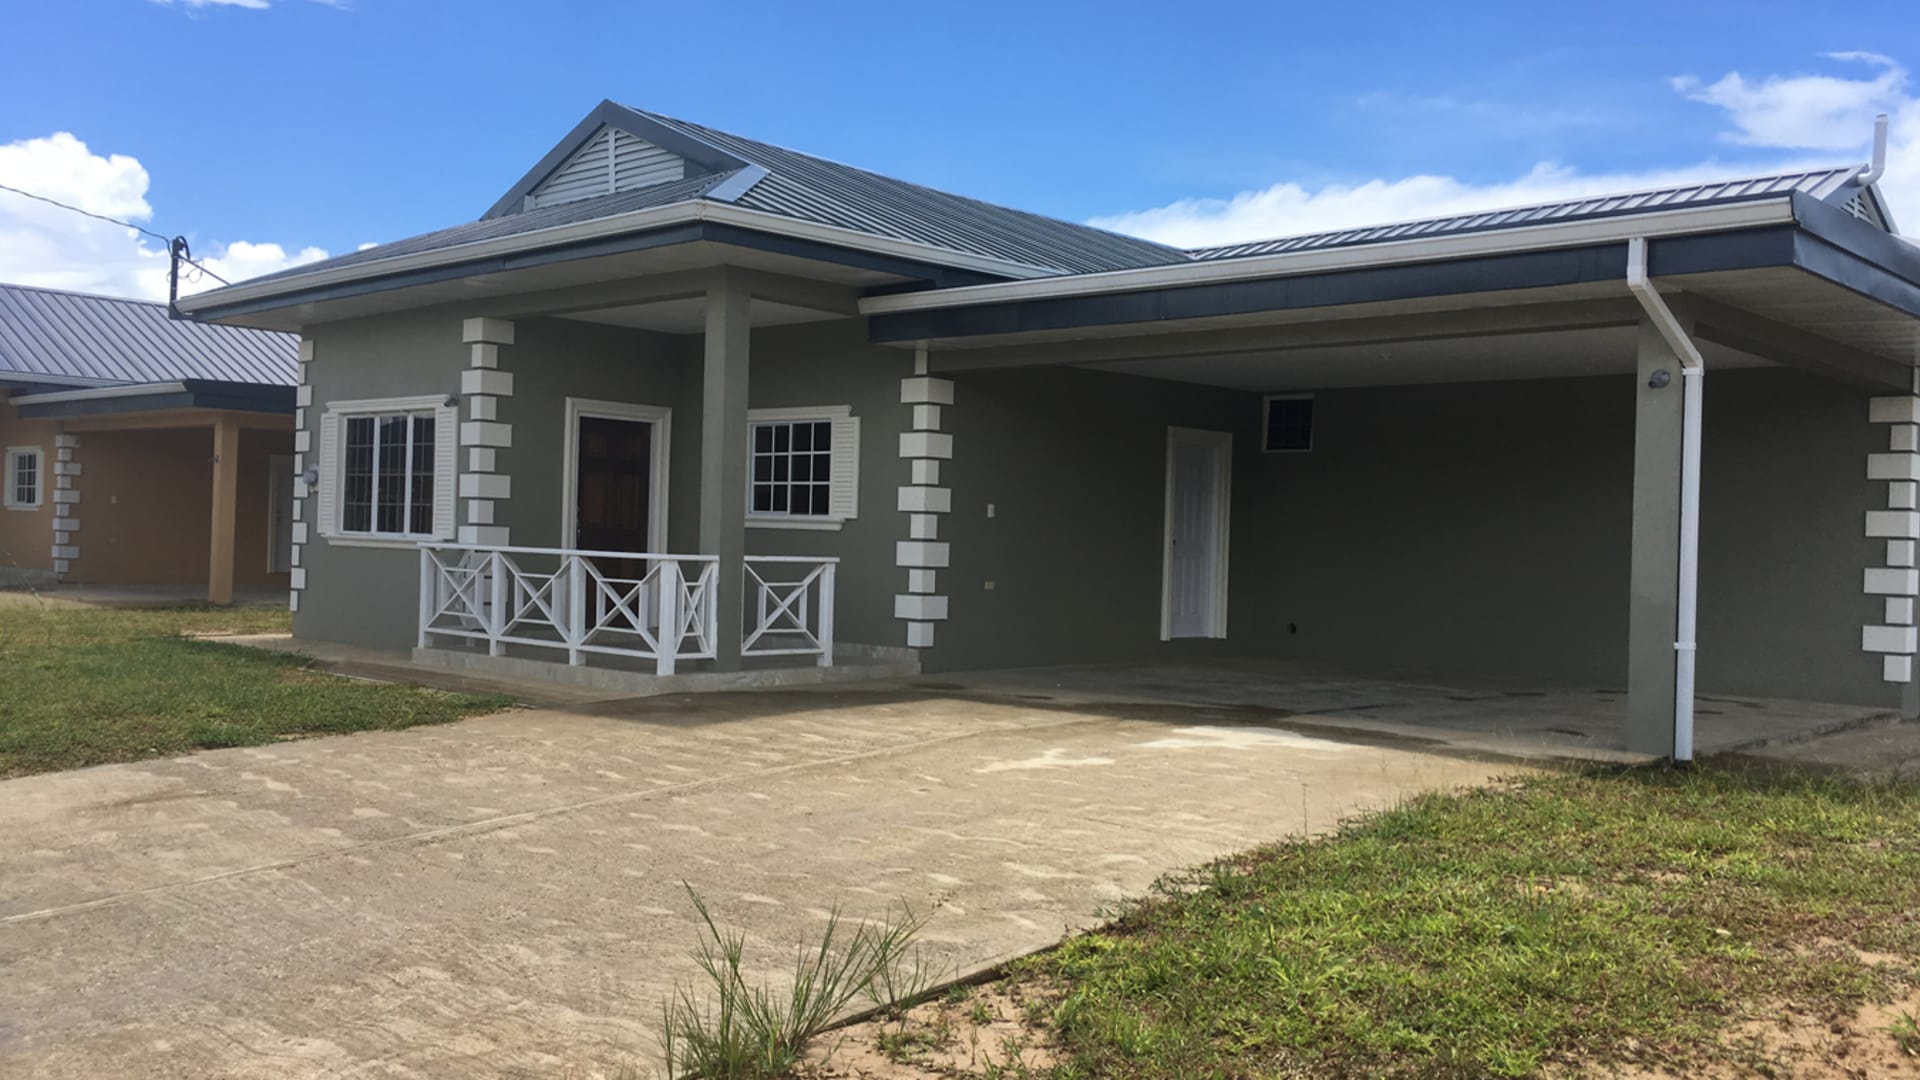 Trinidad And Tobago Homes For Rent To Own Ideakube Magz